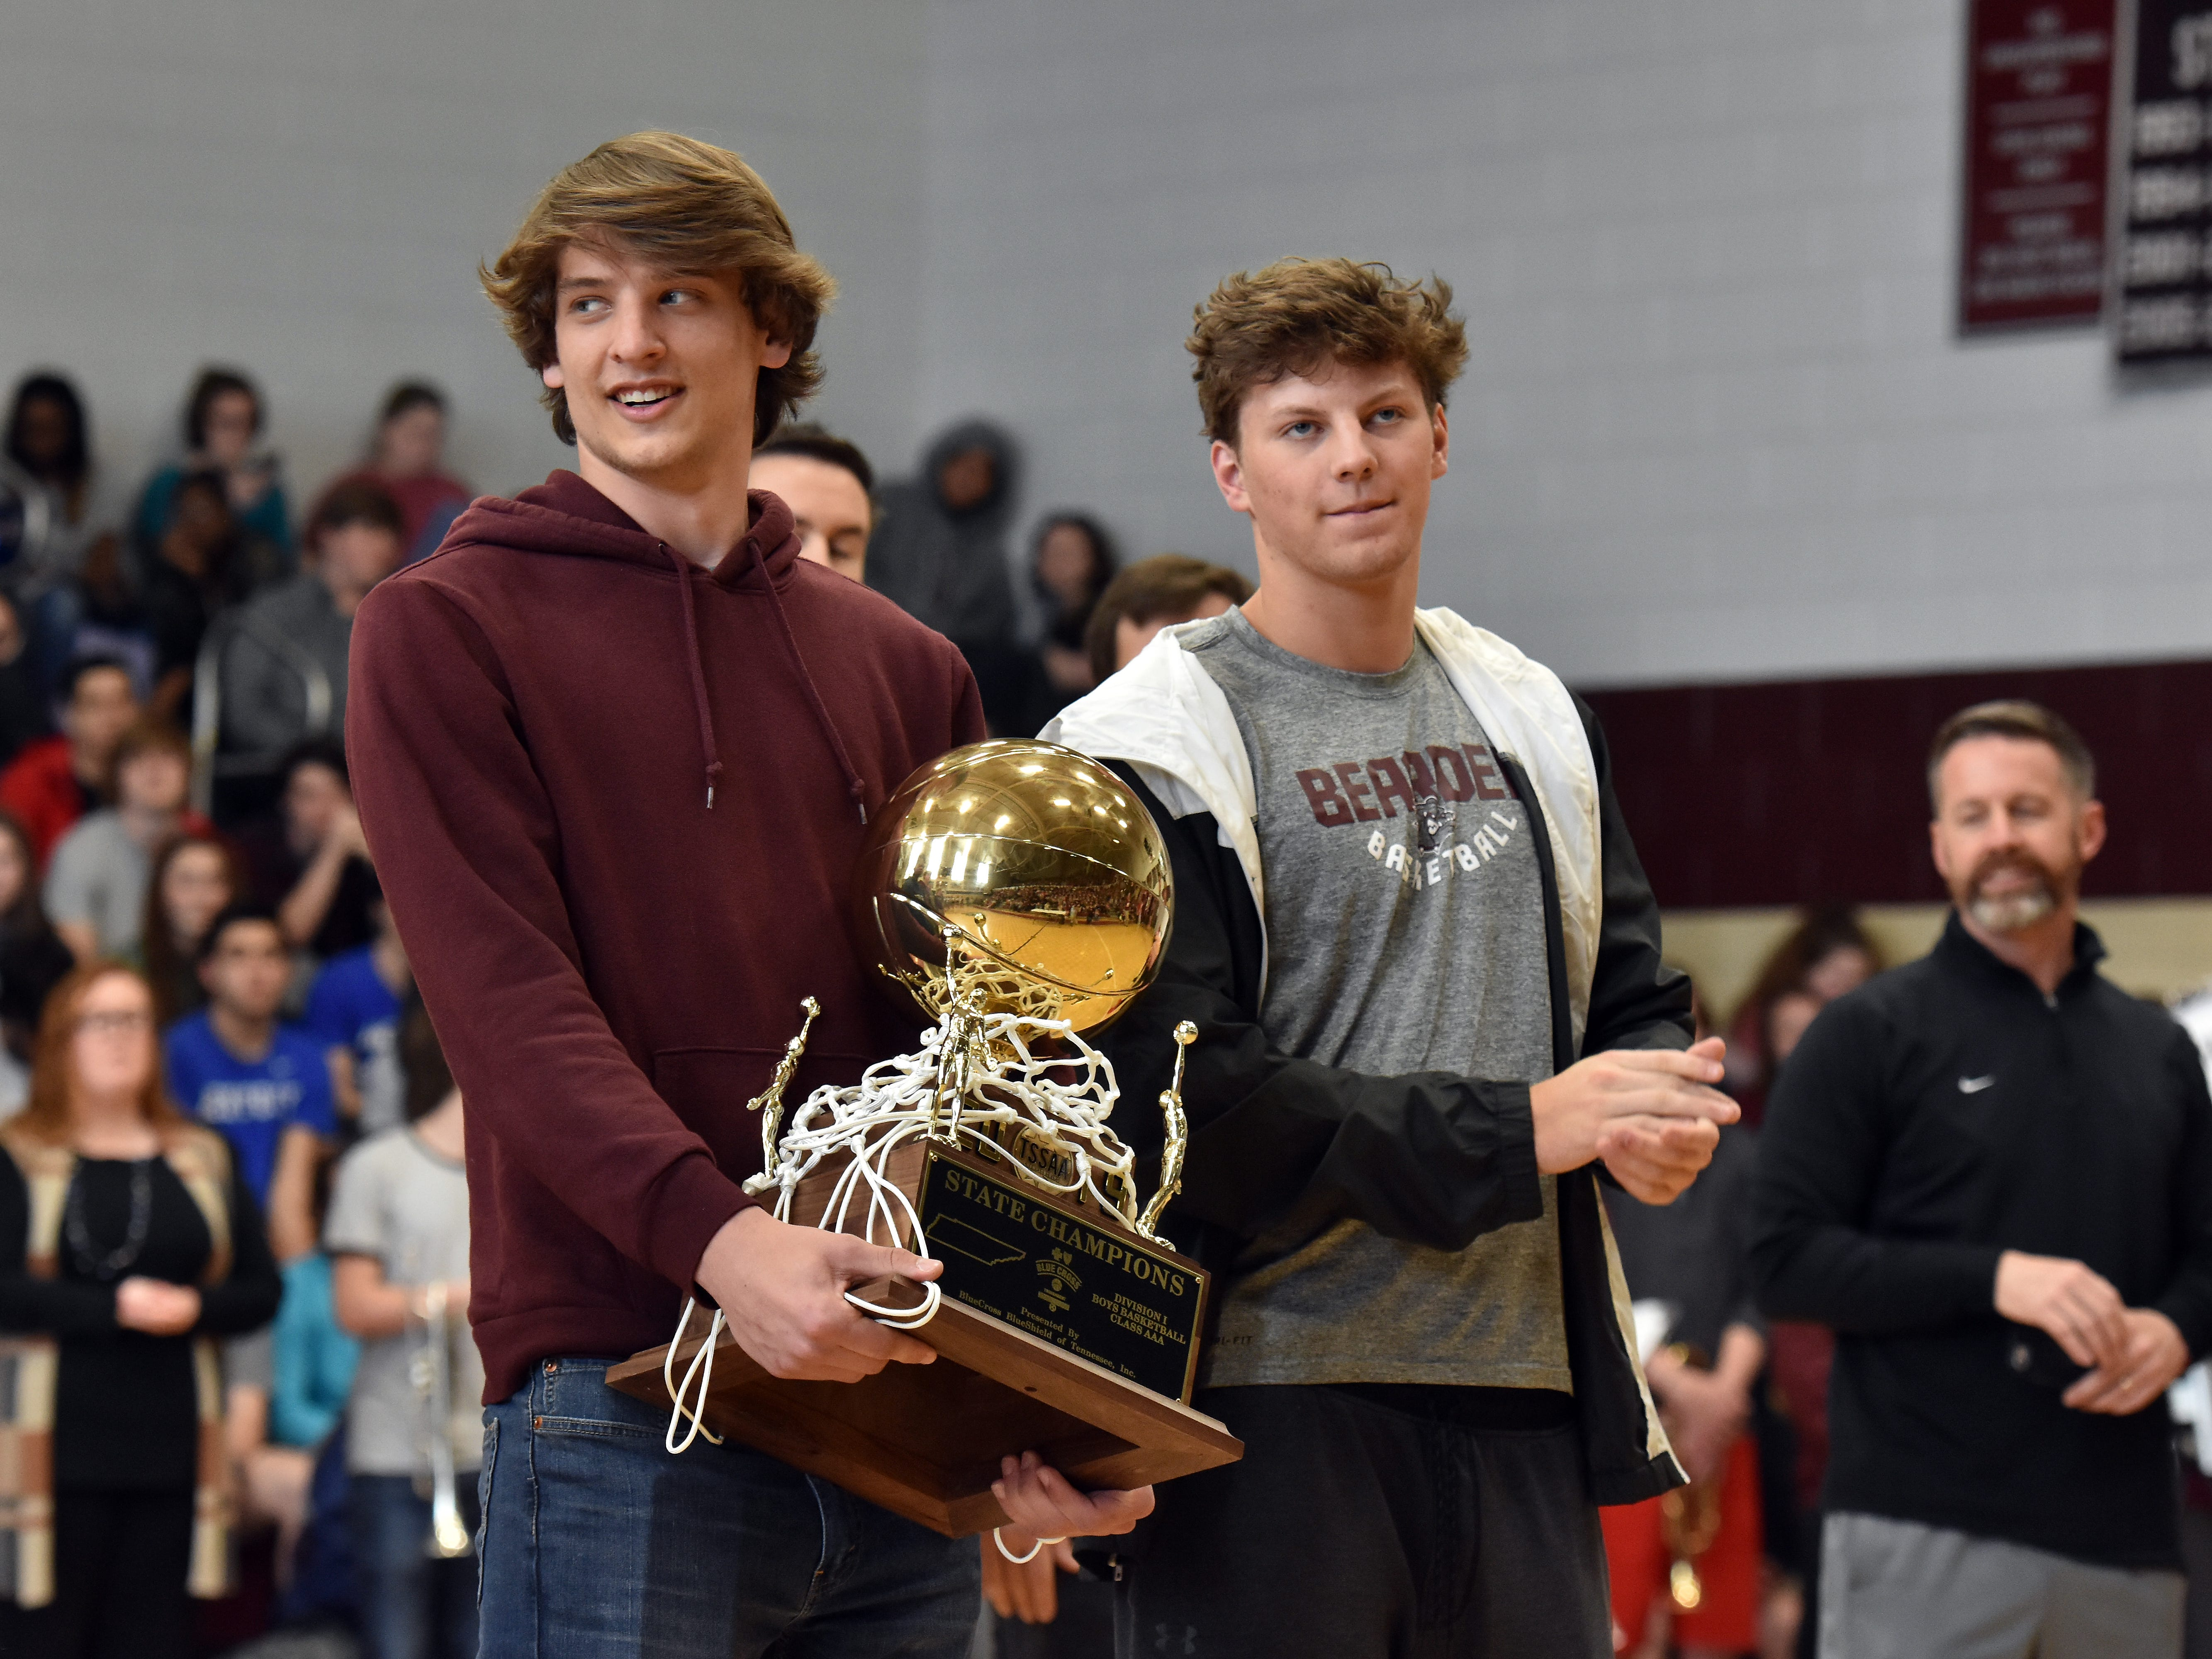 Members of the Bearden High basketball team are honored during a celebration of the school's first state championship on Friday, March 29.